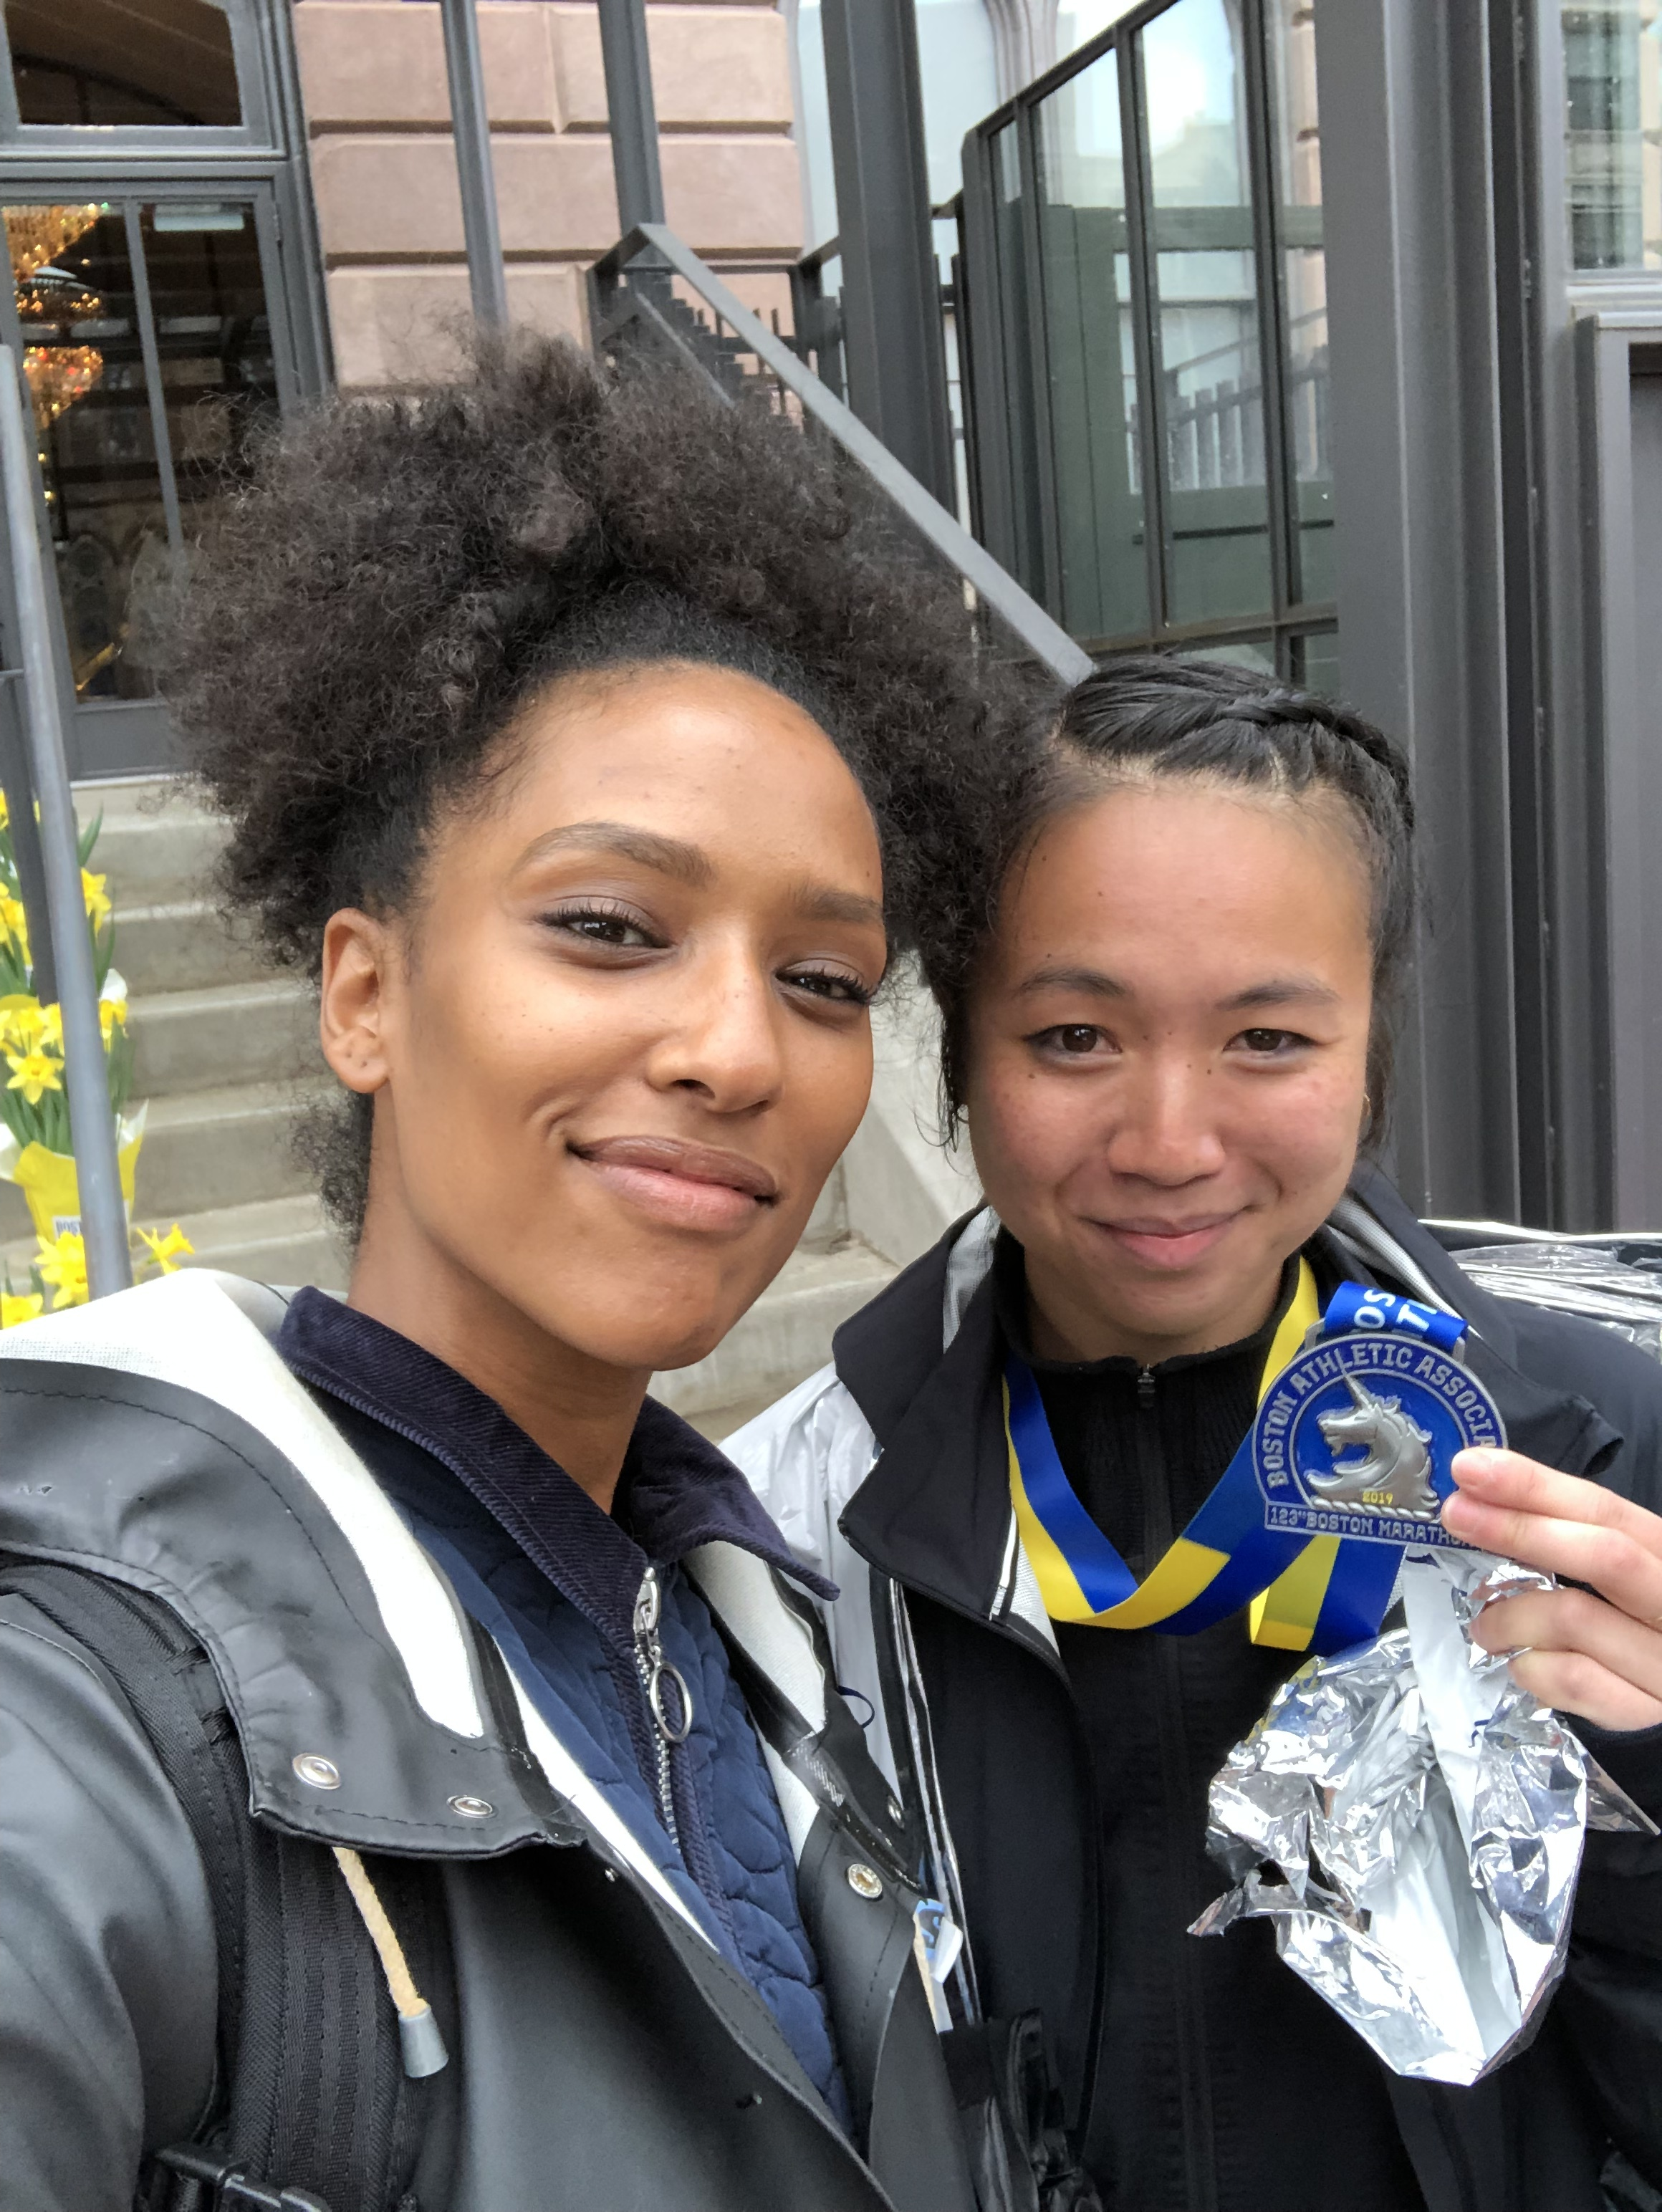 Mekdes  took the bus the same morning to meet me by the finish line. I was fighting my tears because I was so sad, nevertheless she was there. So were all the people on the course and around the world. Thank you!